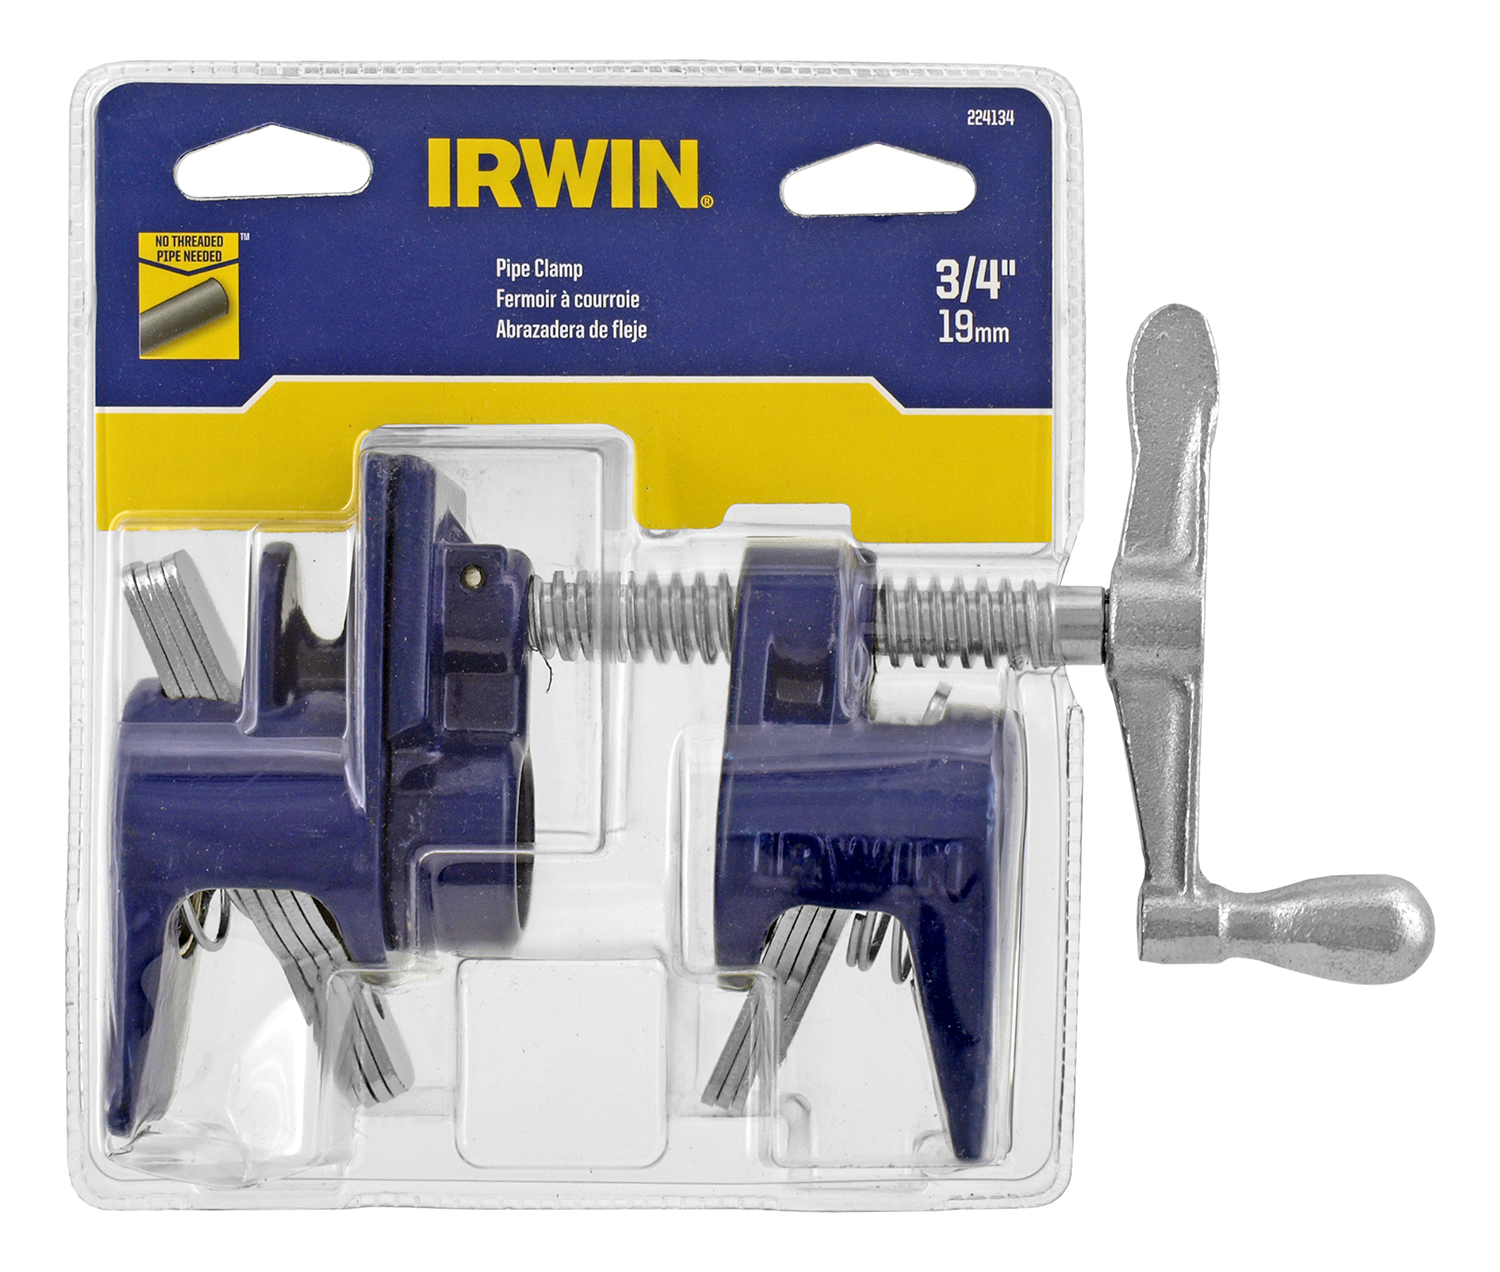 3/4 in Pipe Clamp Vise 224134  - Irwin